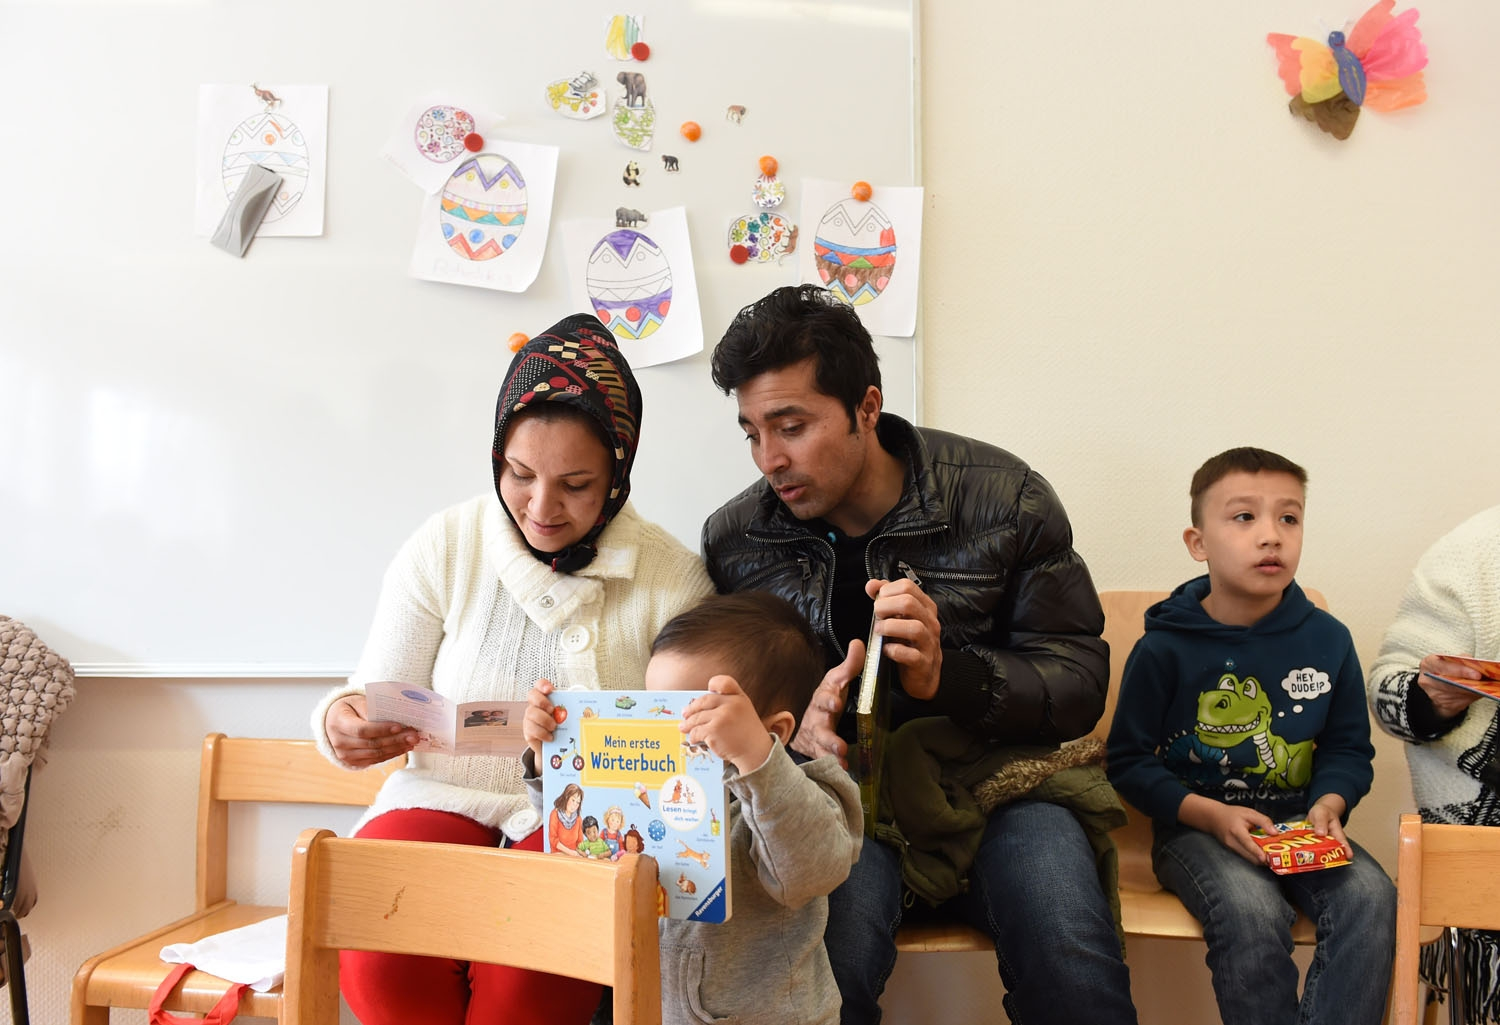 Refugee children and their parents from Afghanistan look at books and games during a first event of the three-year program reading start for refugee children in the refugee camp Bayernkaserne in Munich, southern Germany, on March 21, 2016